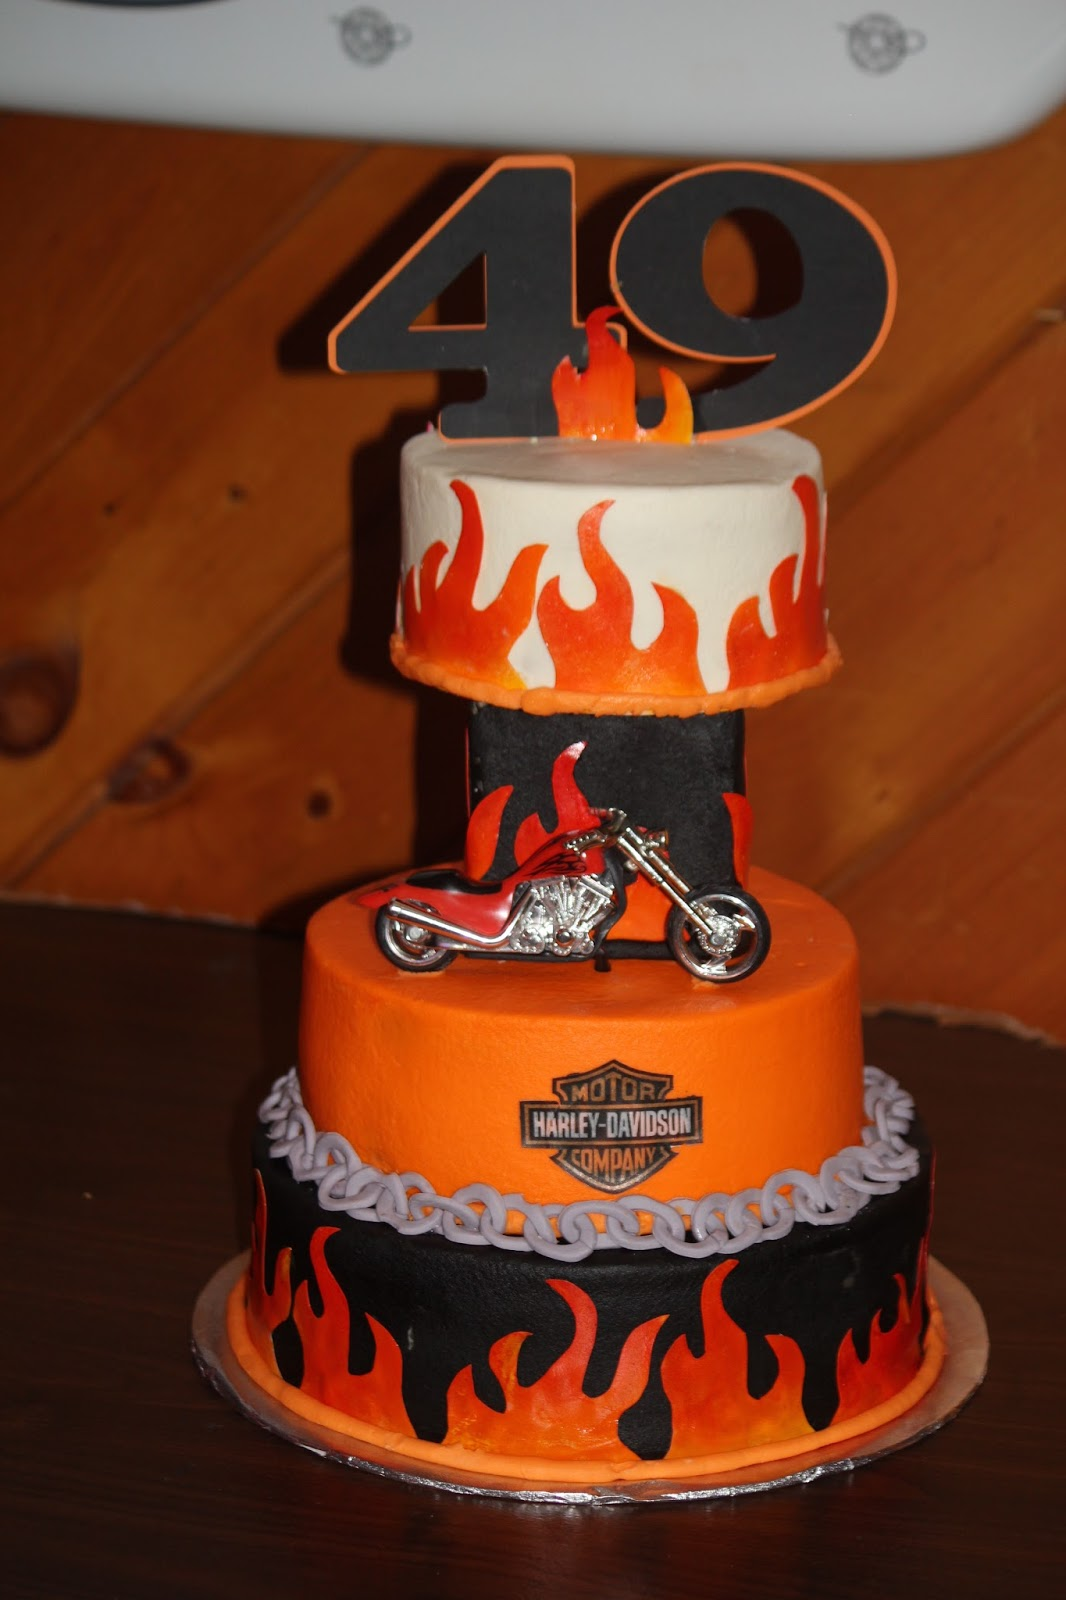 Designs By Lamuir Harley Davidson Flames Chains Birthday Cake